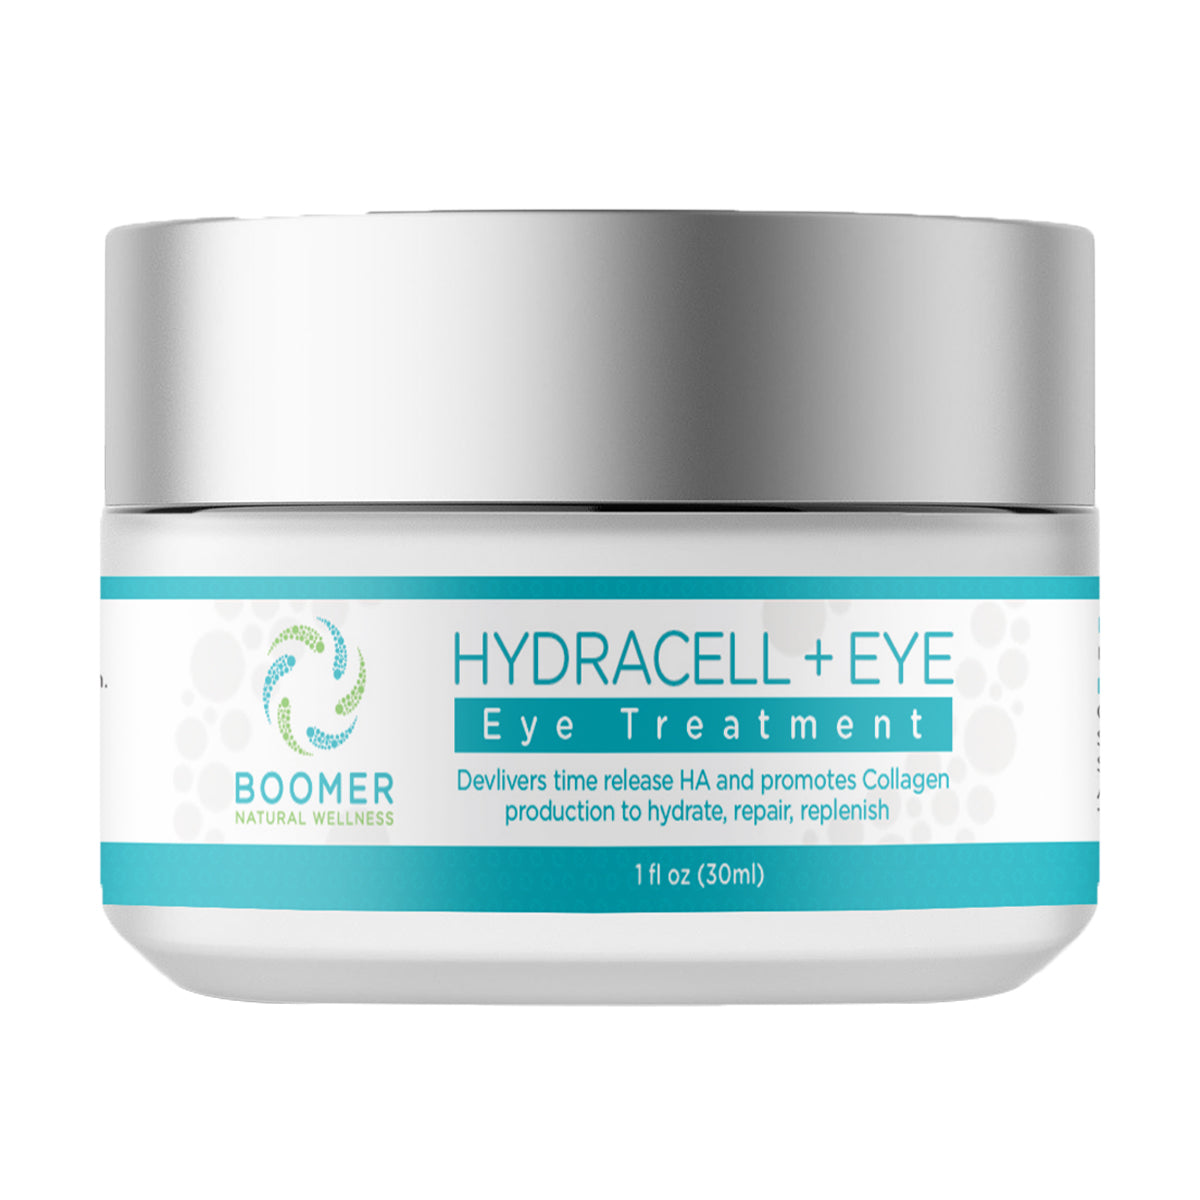 Hydracell+ Eye